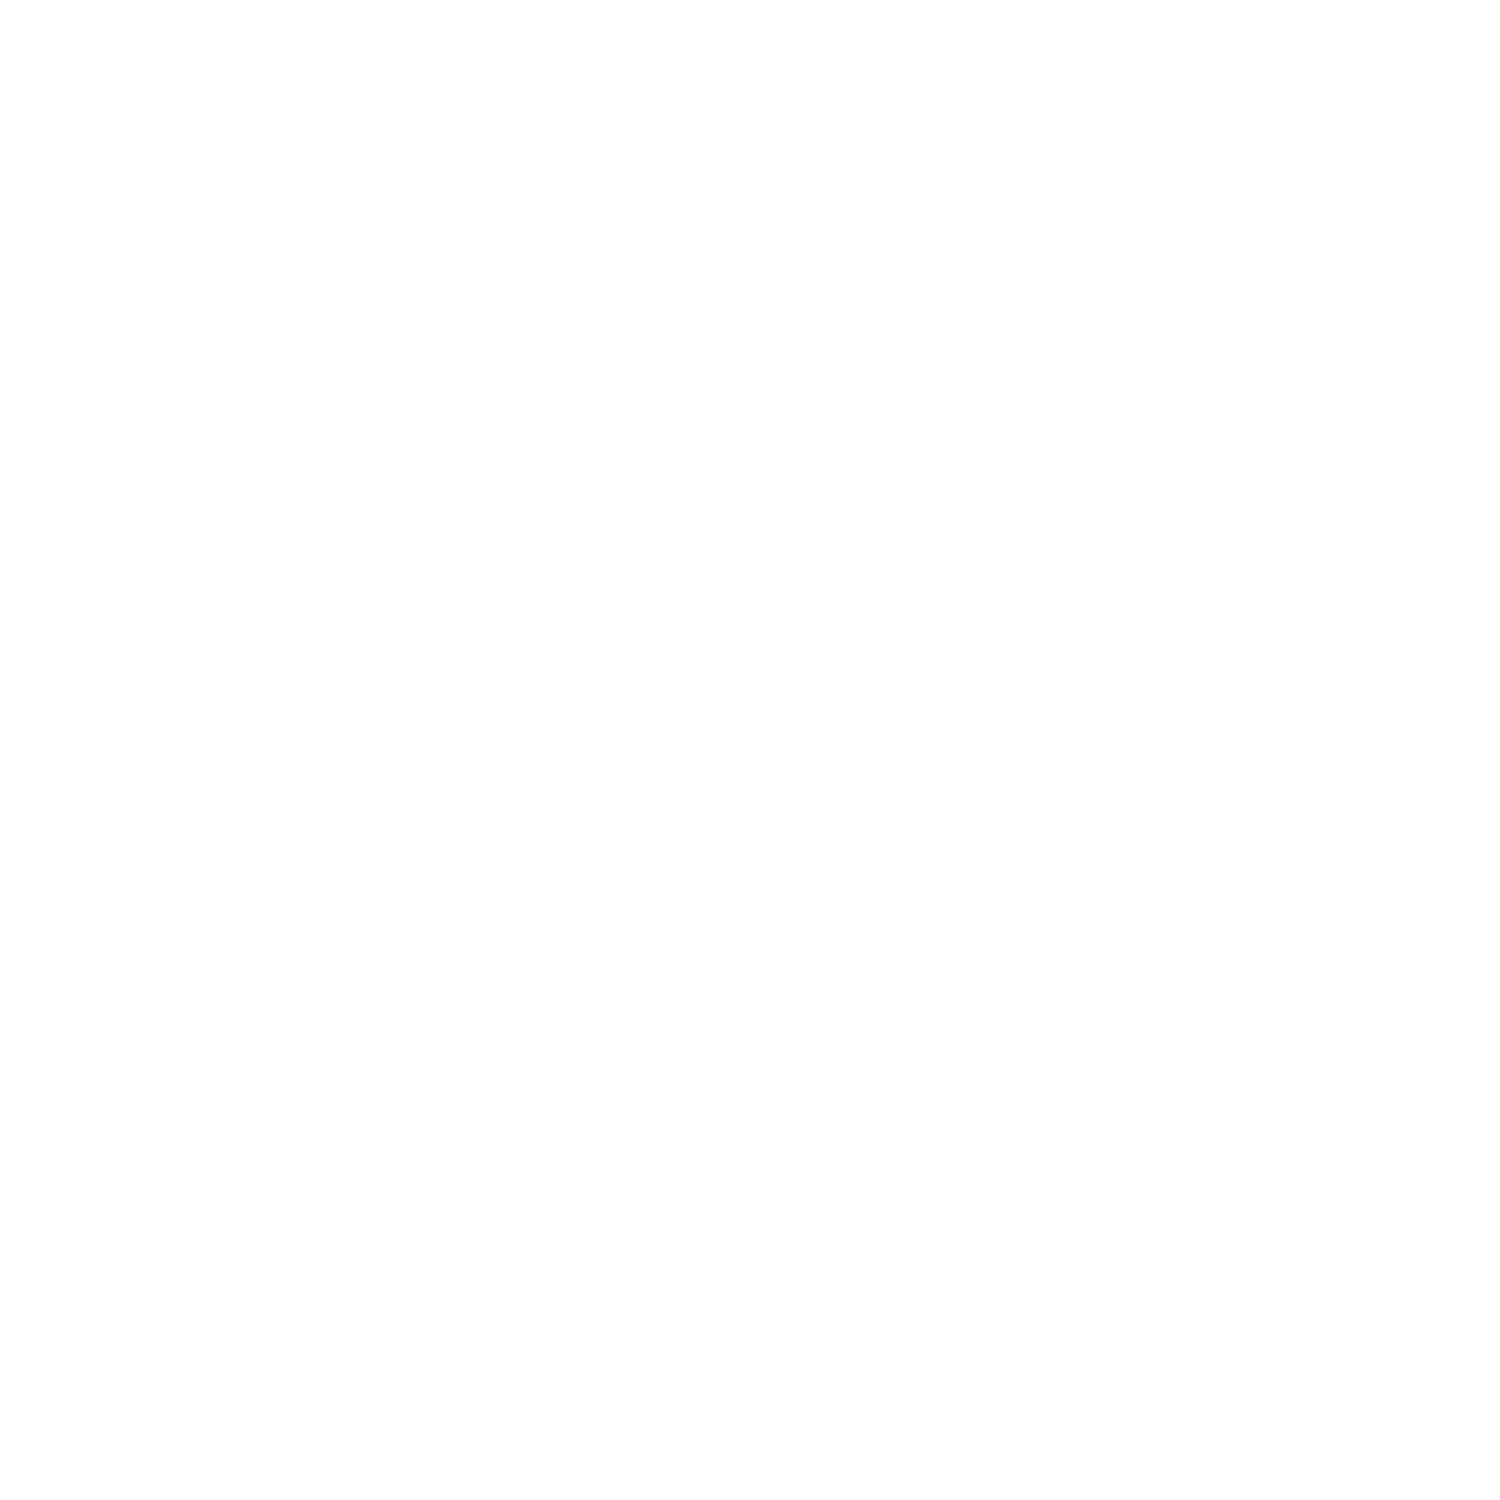 Jordan Sherman Band